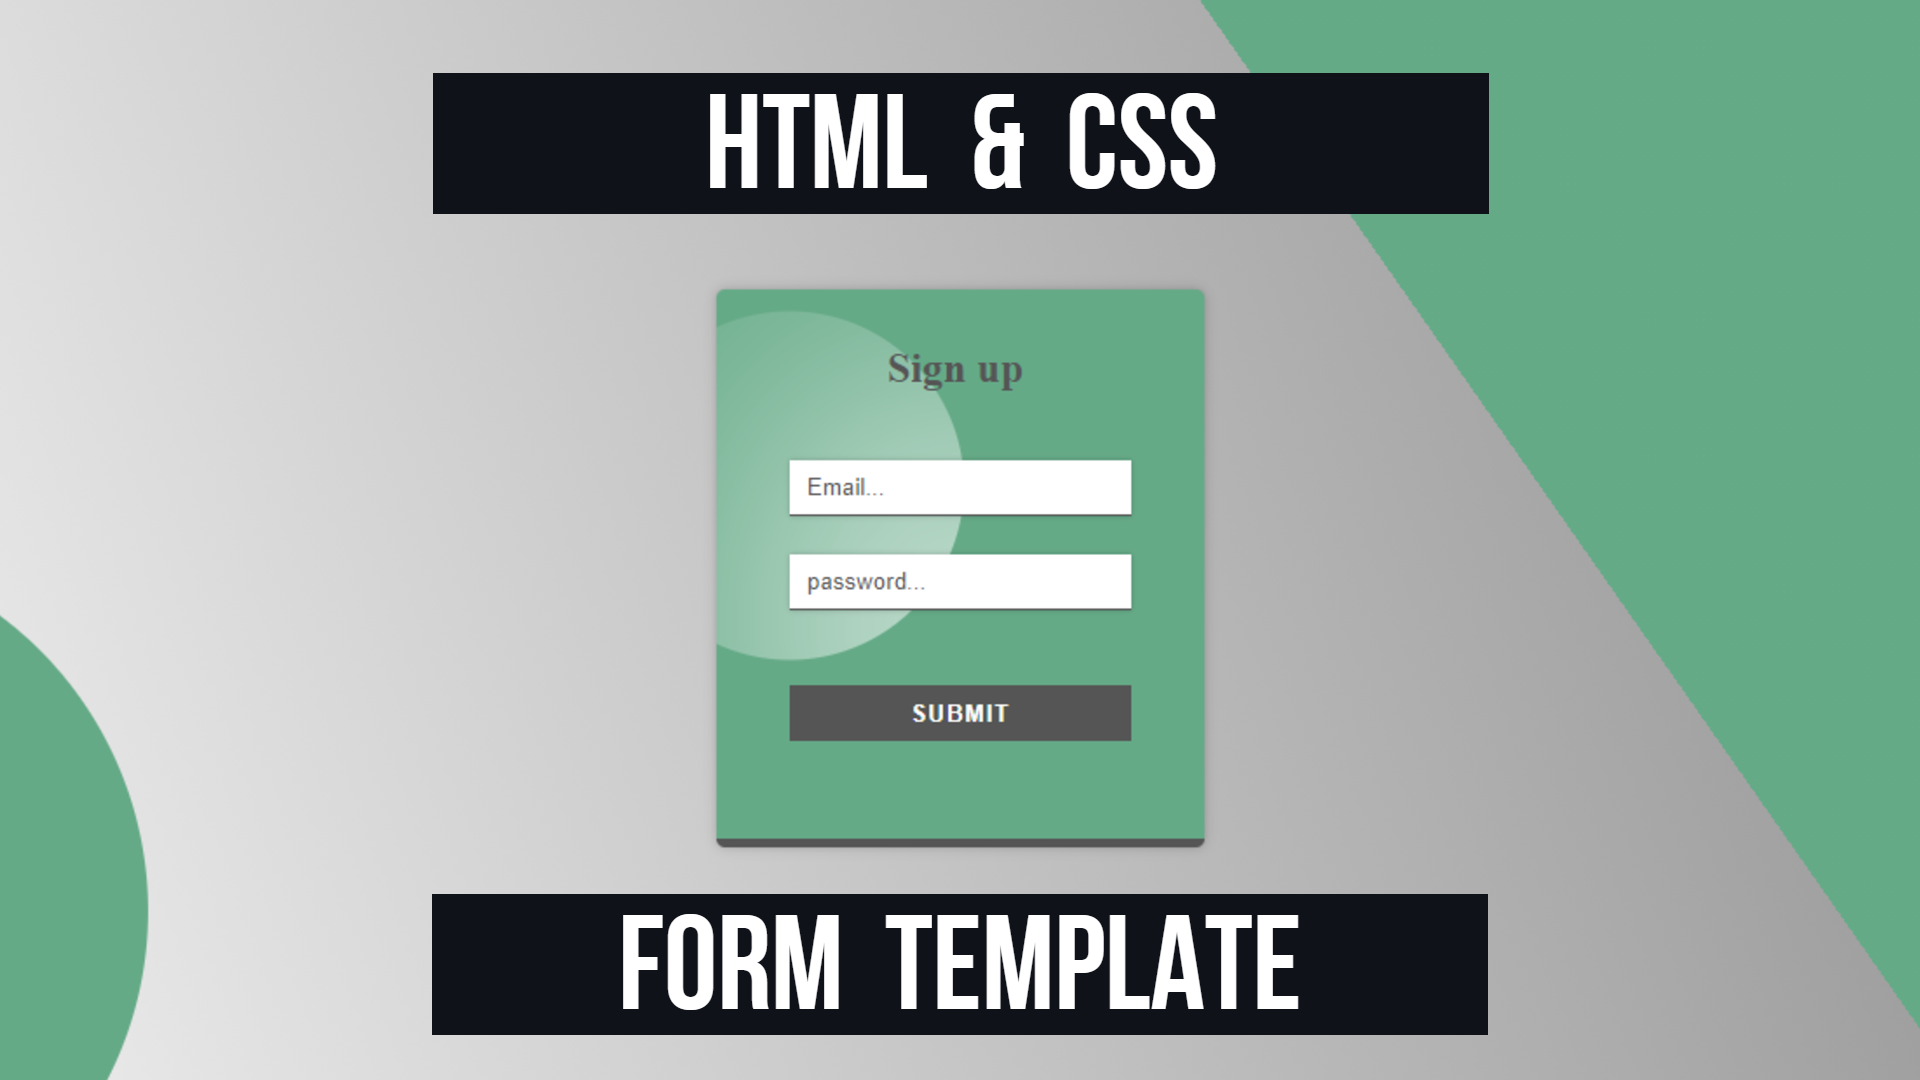 Html & Css Simple Form Template